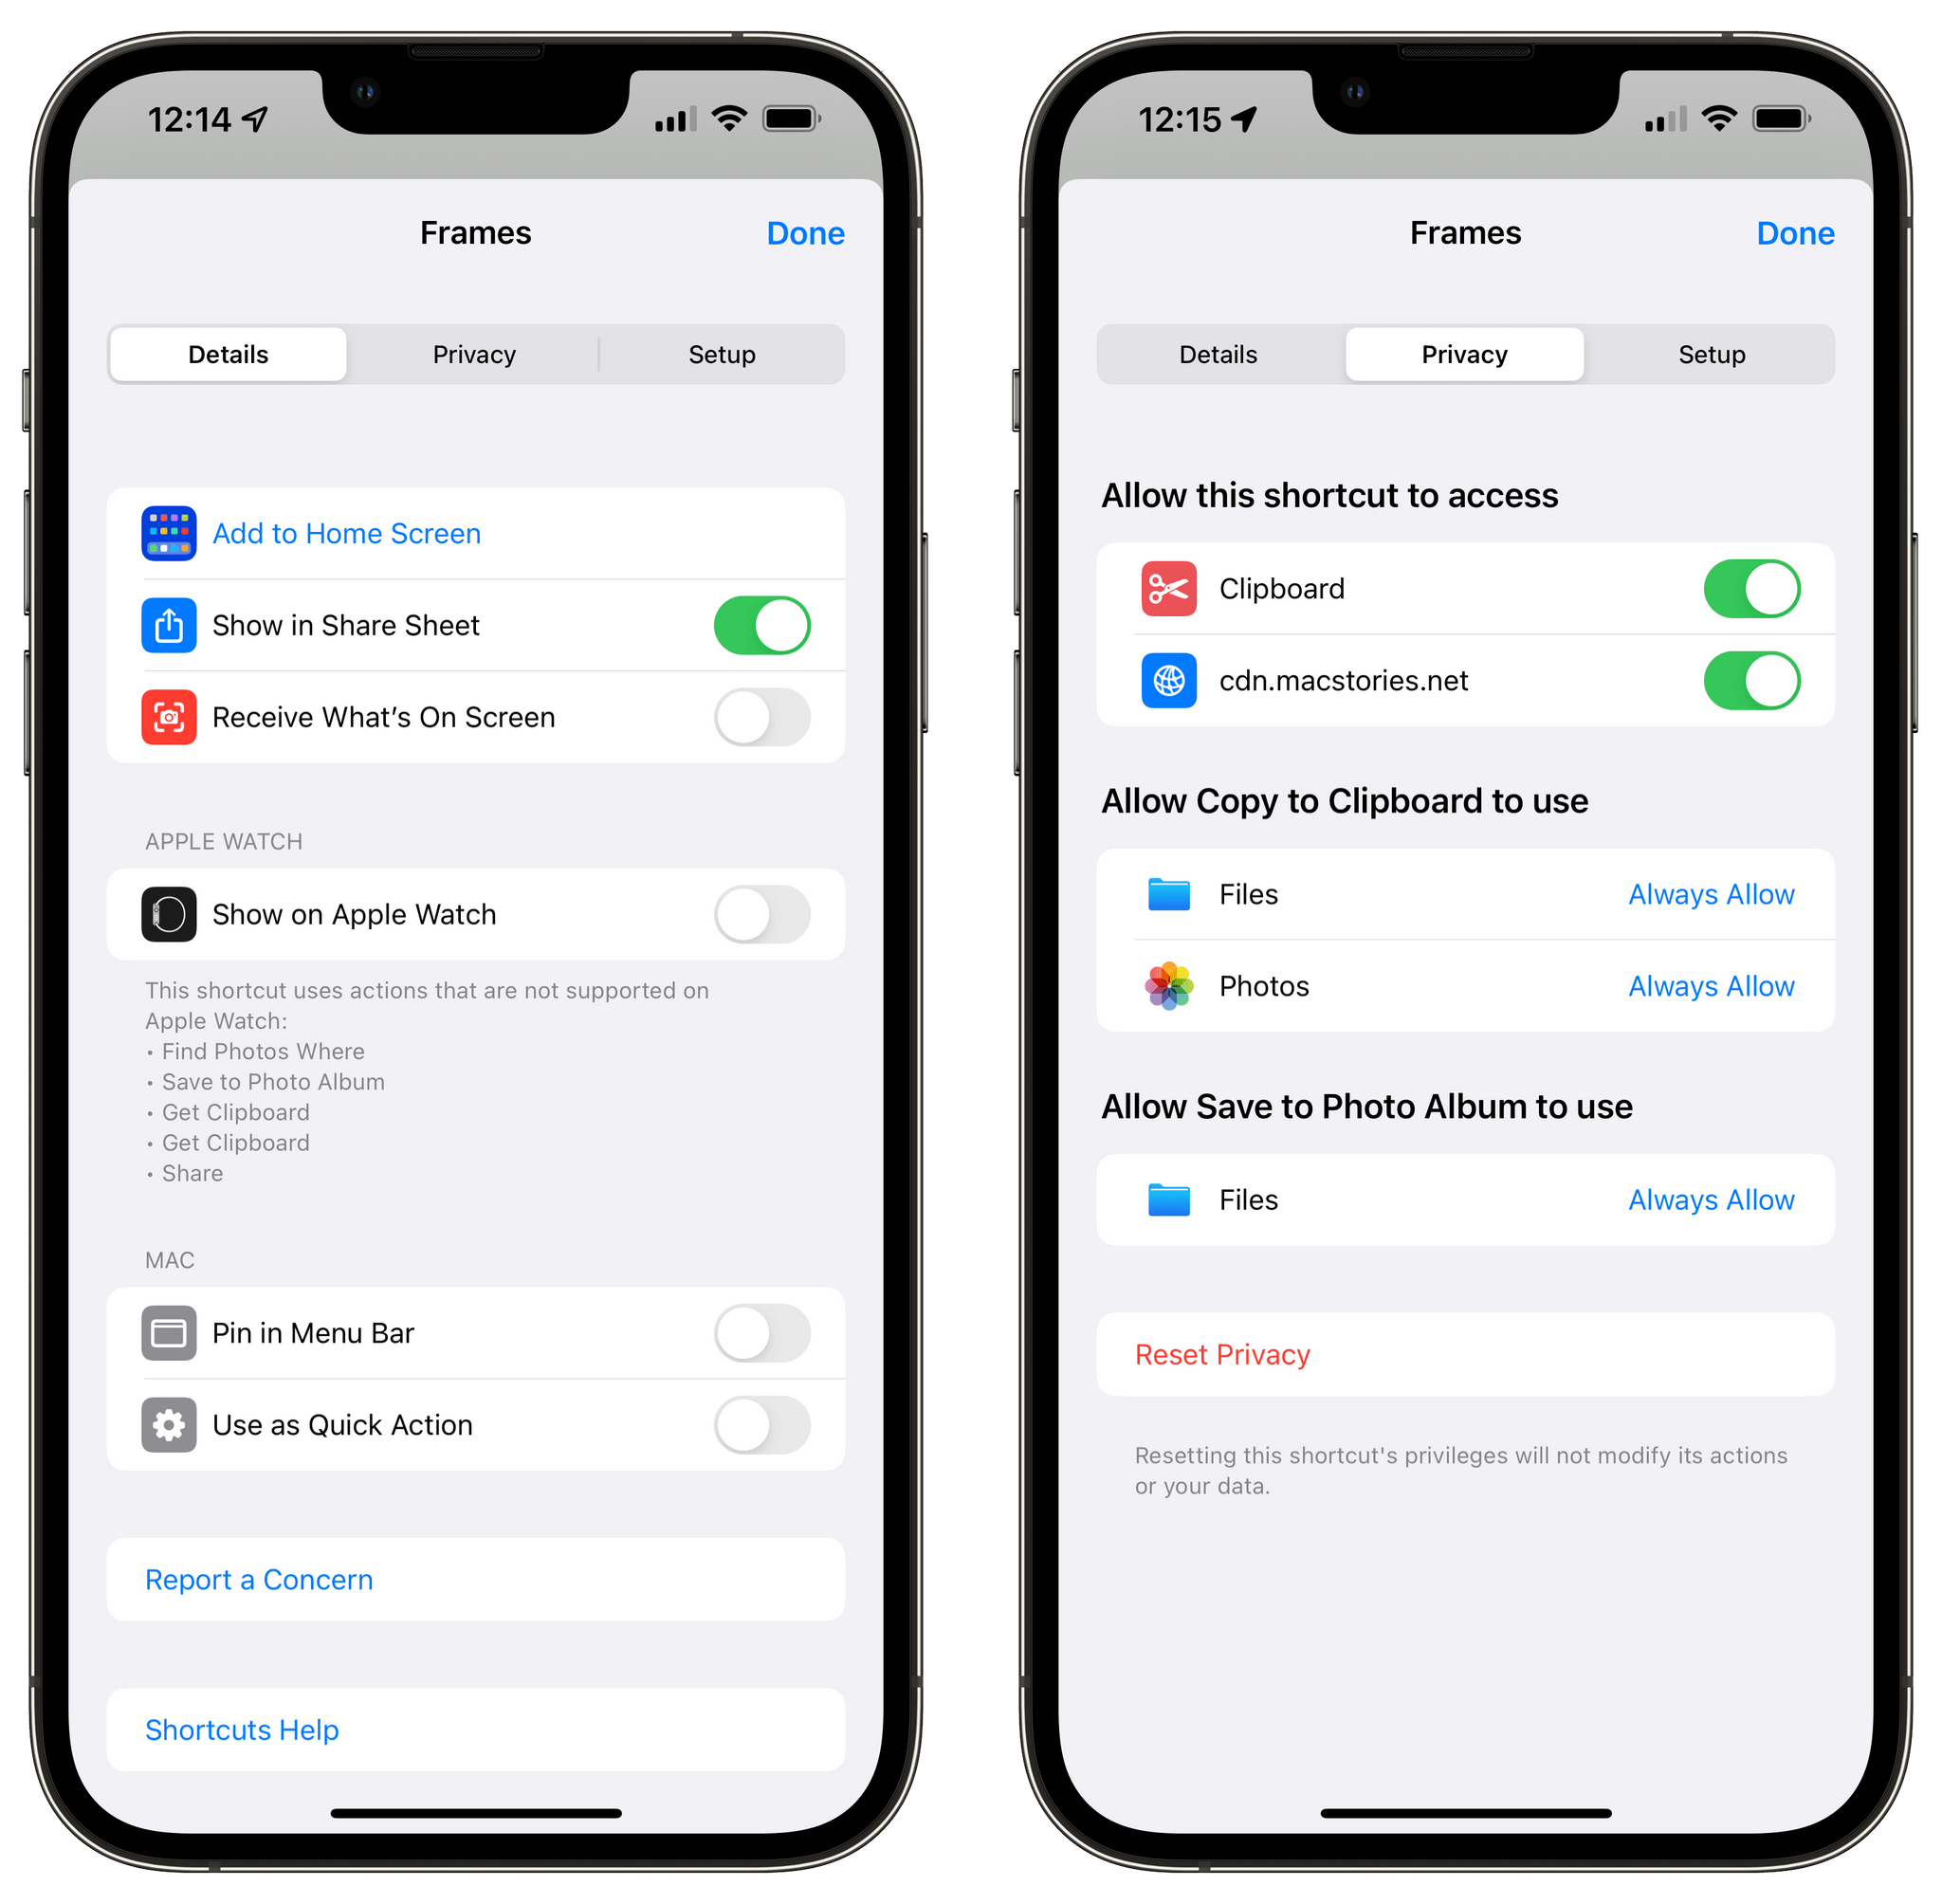 Privacy permissions for Apple Frames.